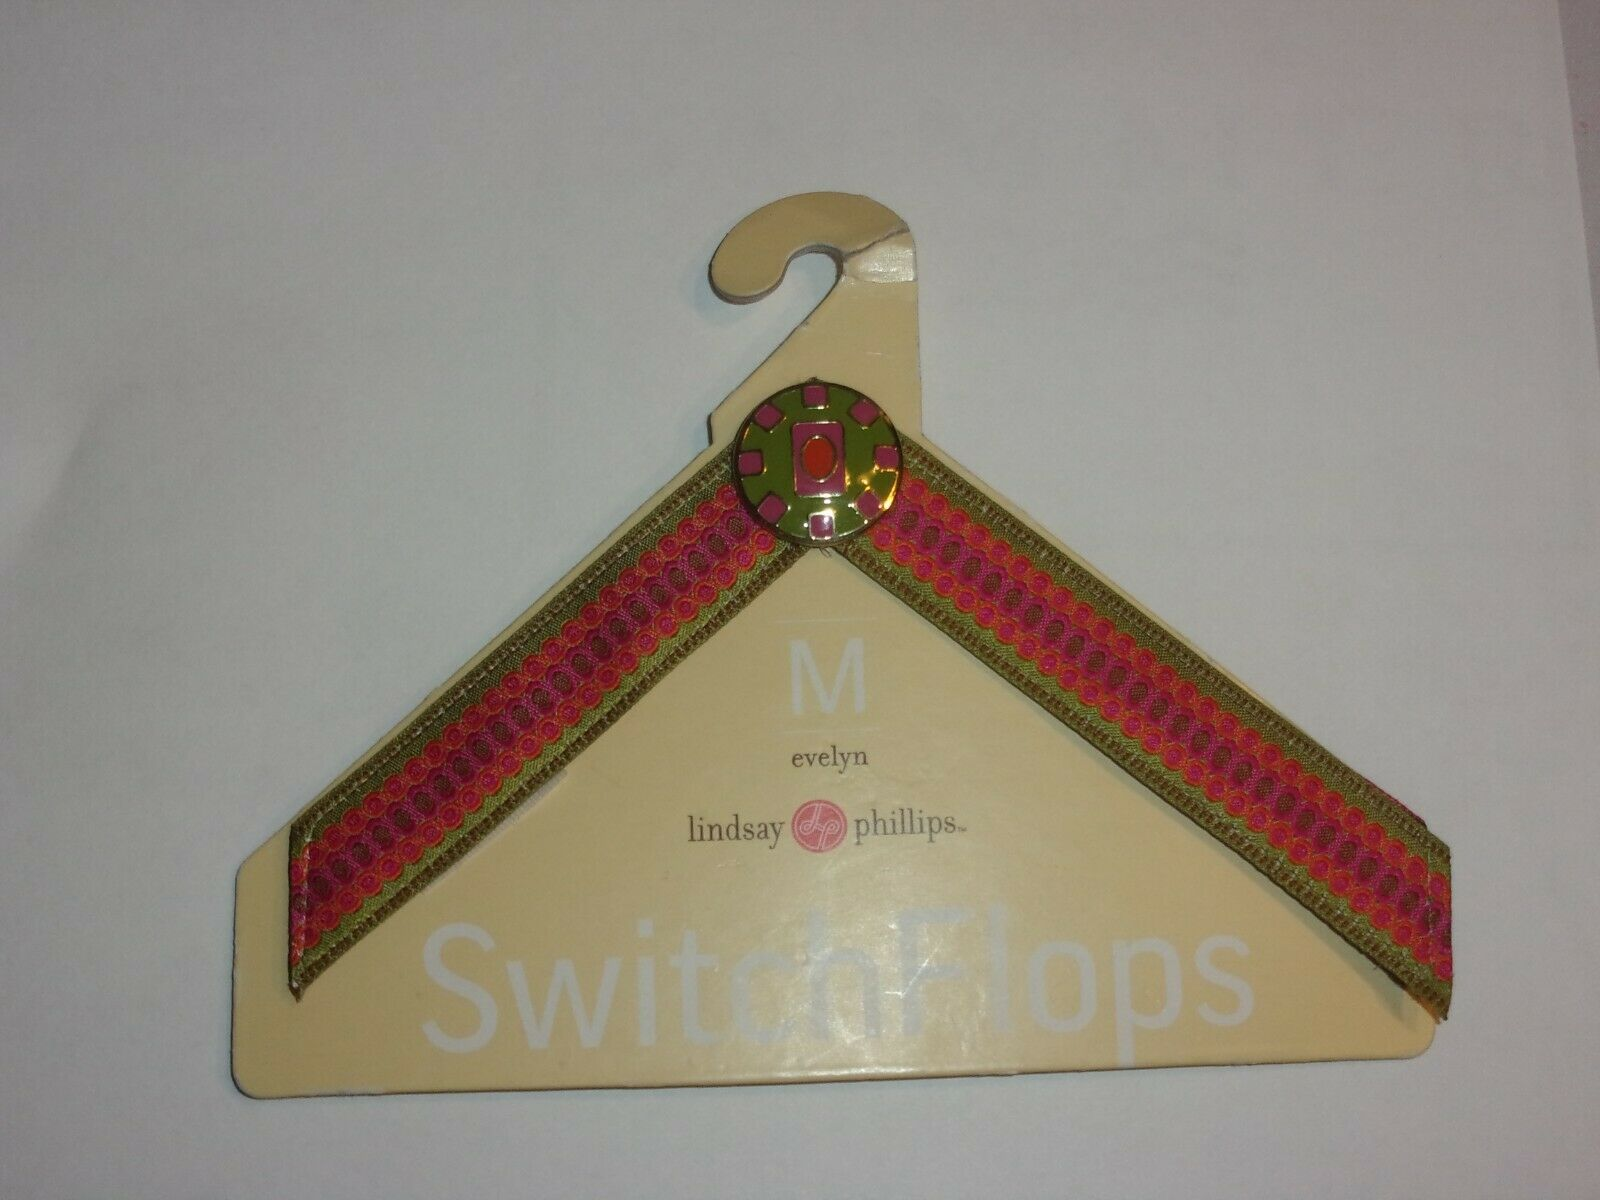 Lindsay Phillips SwitchFlops interchangeable strap Evelyn M new on card